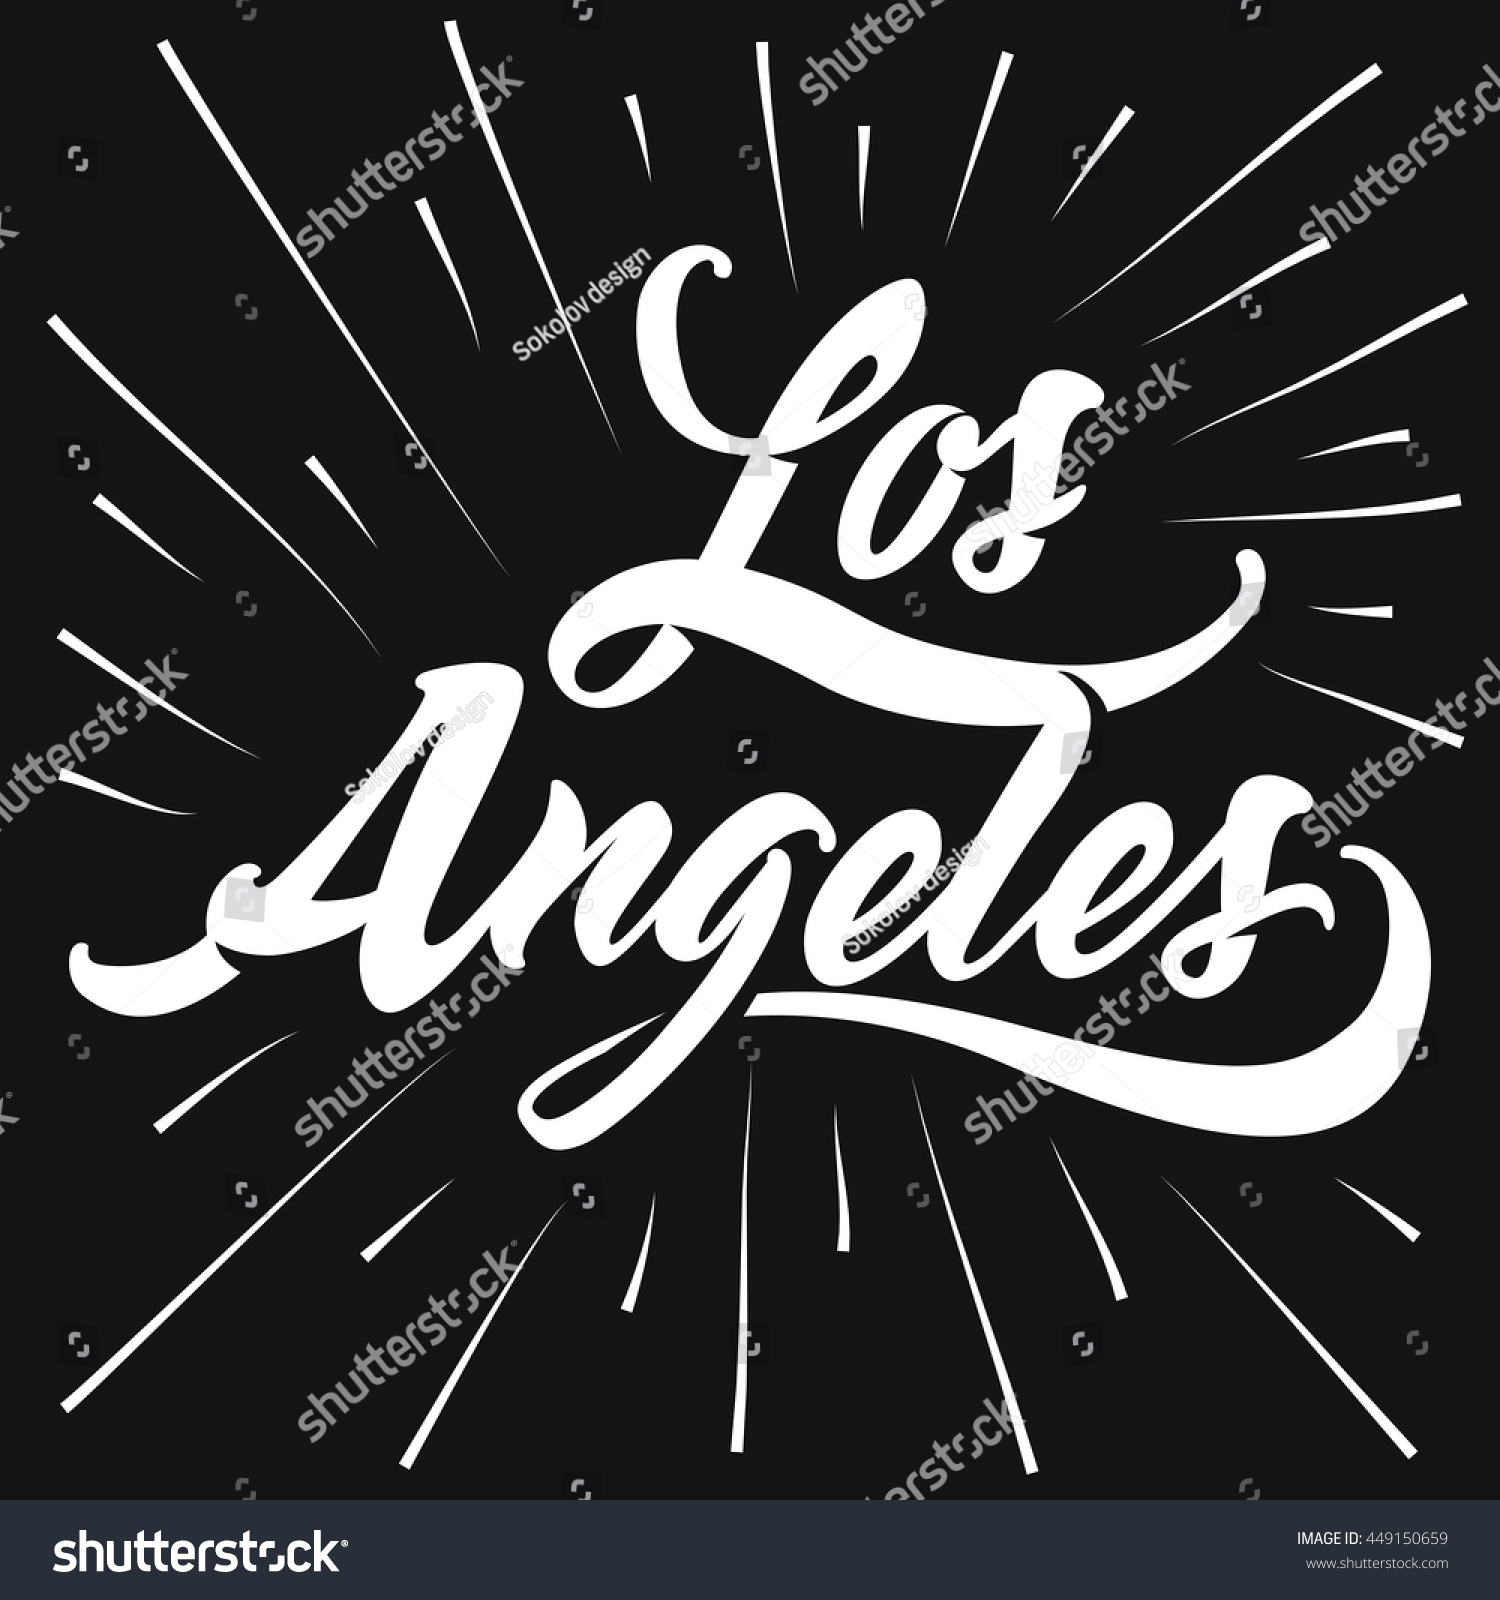 Design t shirts los angeles - Retro Old School Tee Graphics Vintage Hand Lettered Textured Los Angeles T Shirt Apparel Fashion